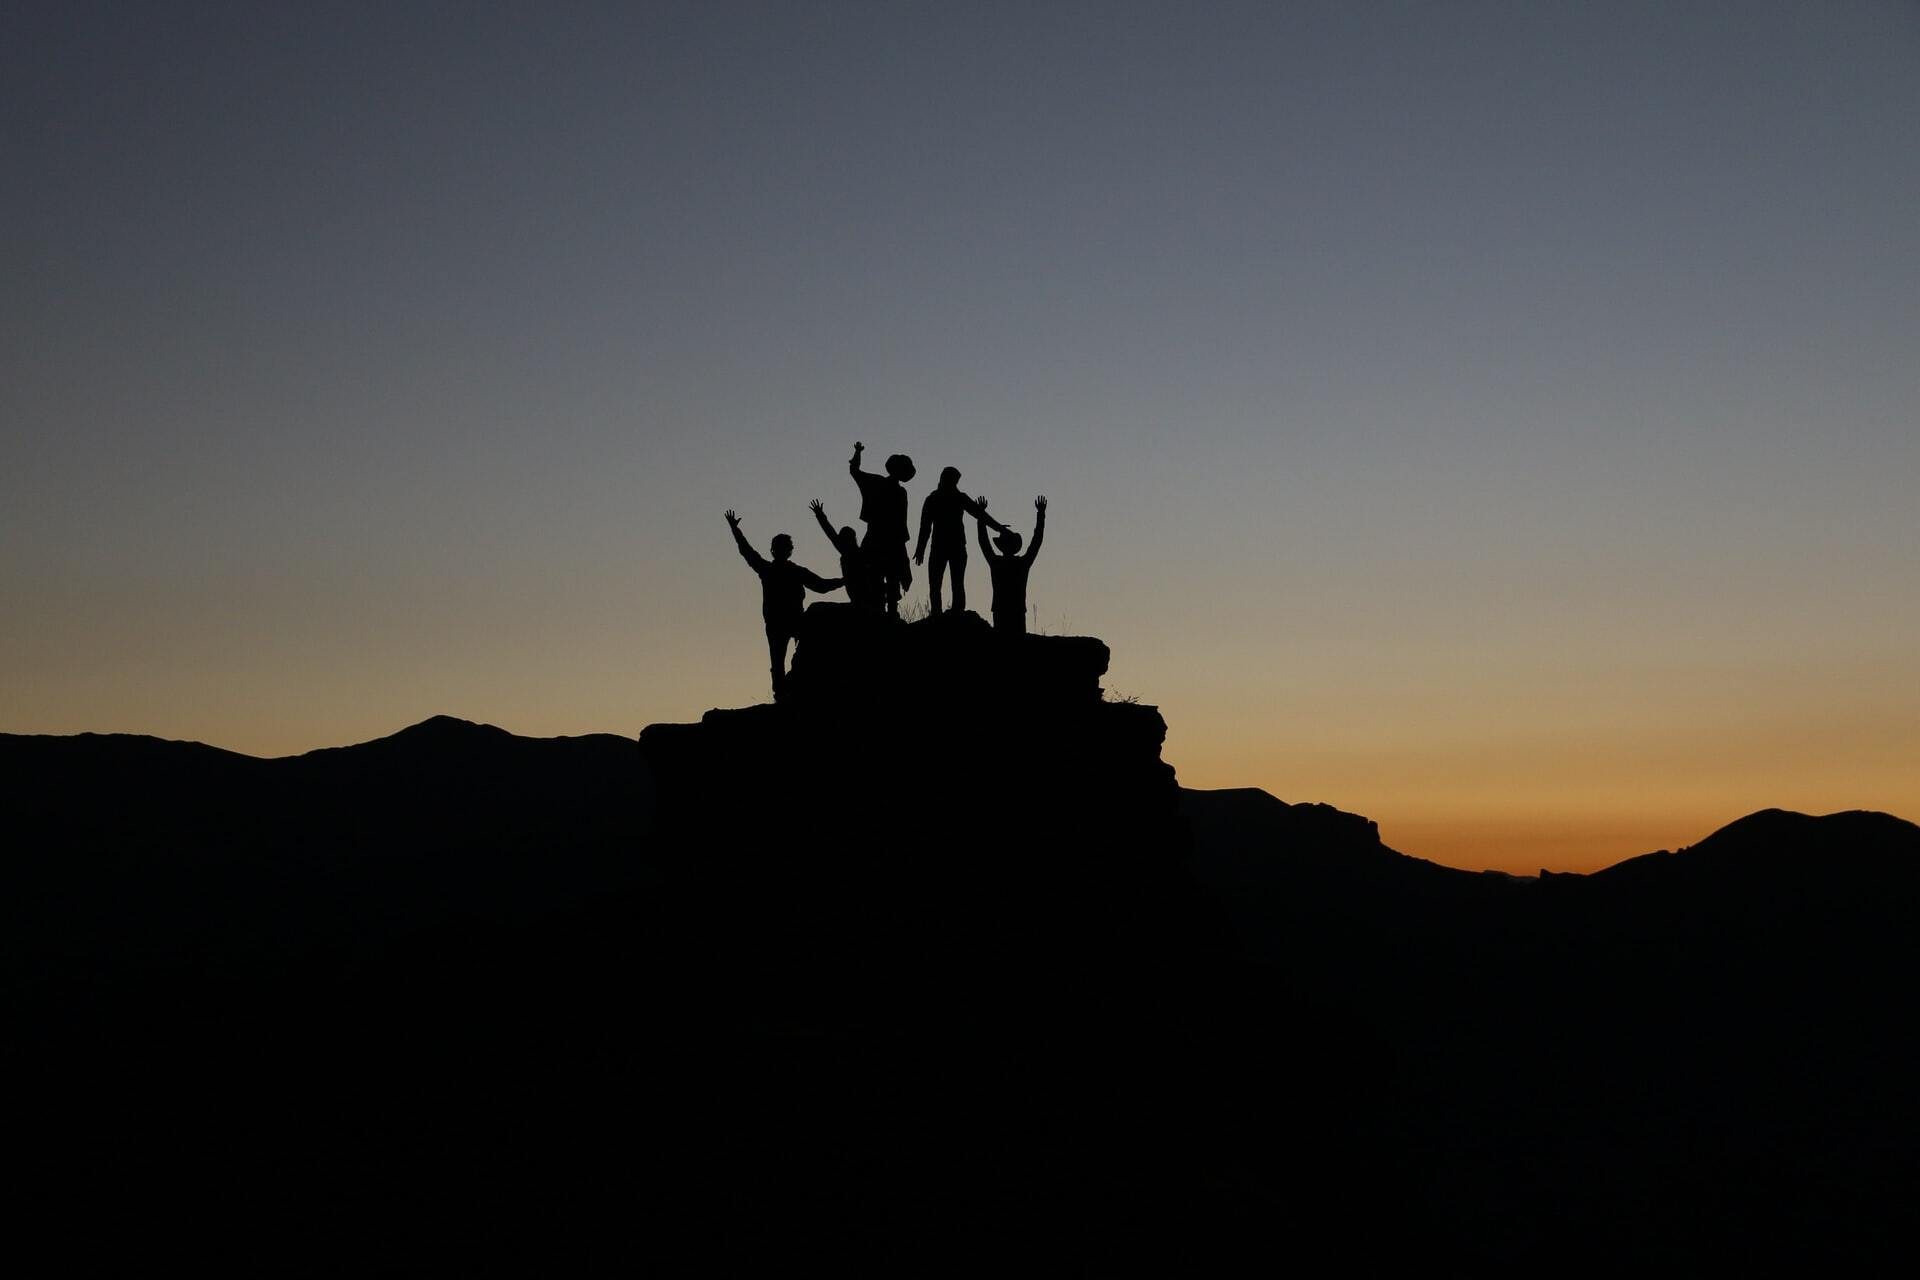 Team reaching the summit together